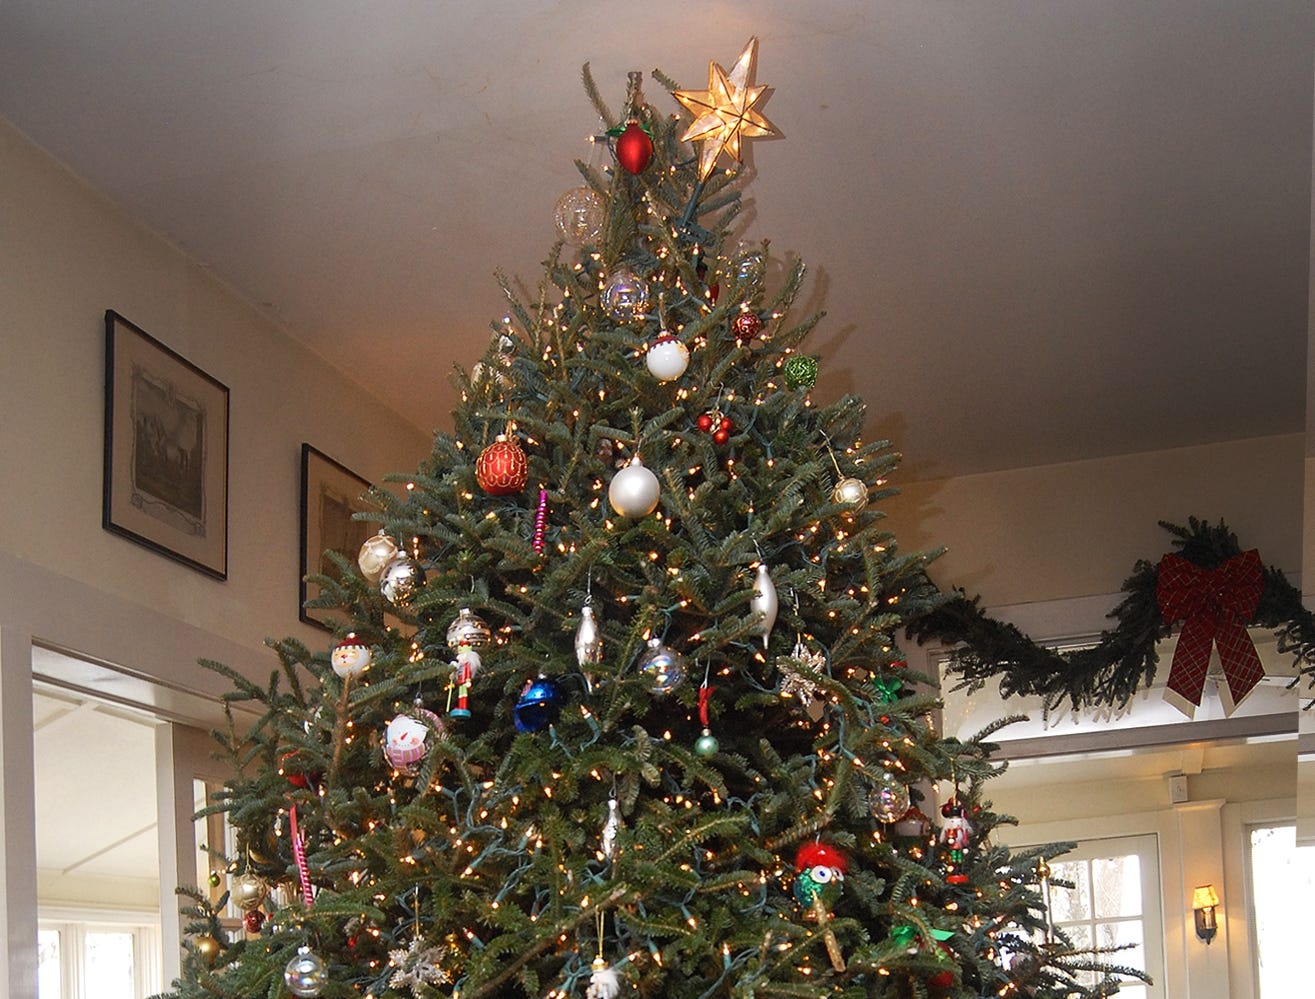 The Christmas tree at the Orchard Inn brushes up against the ceiling.